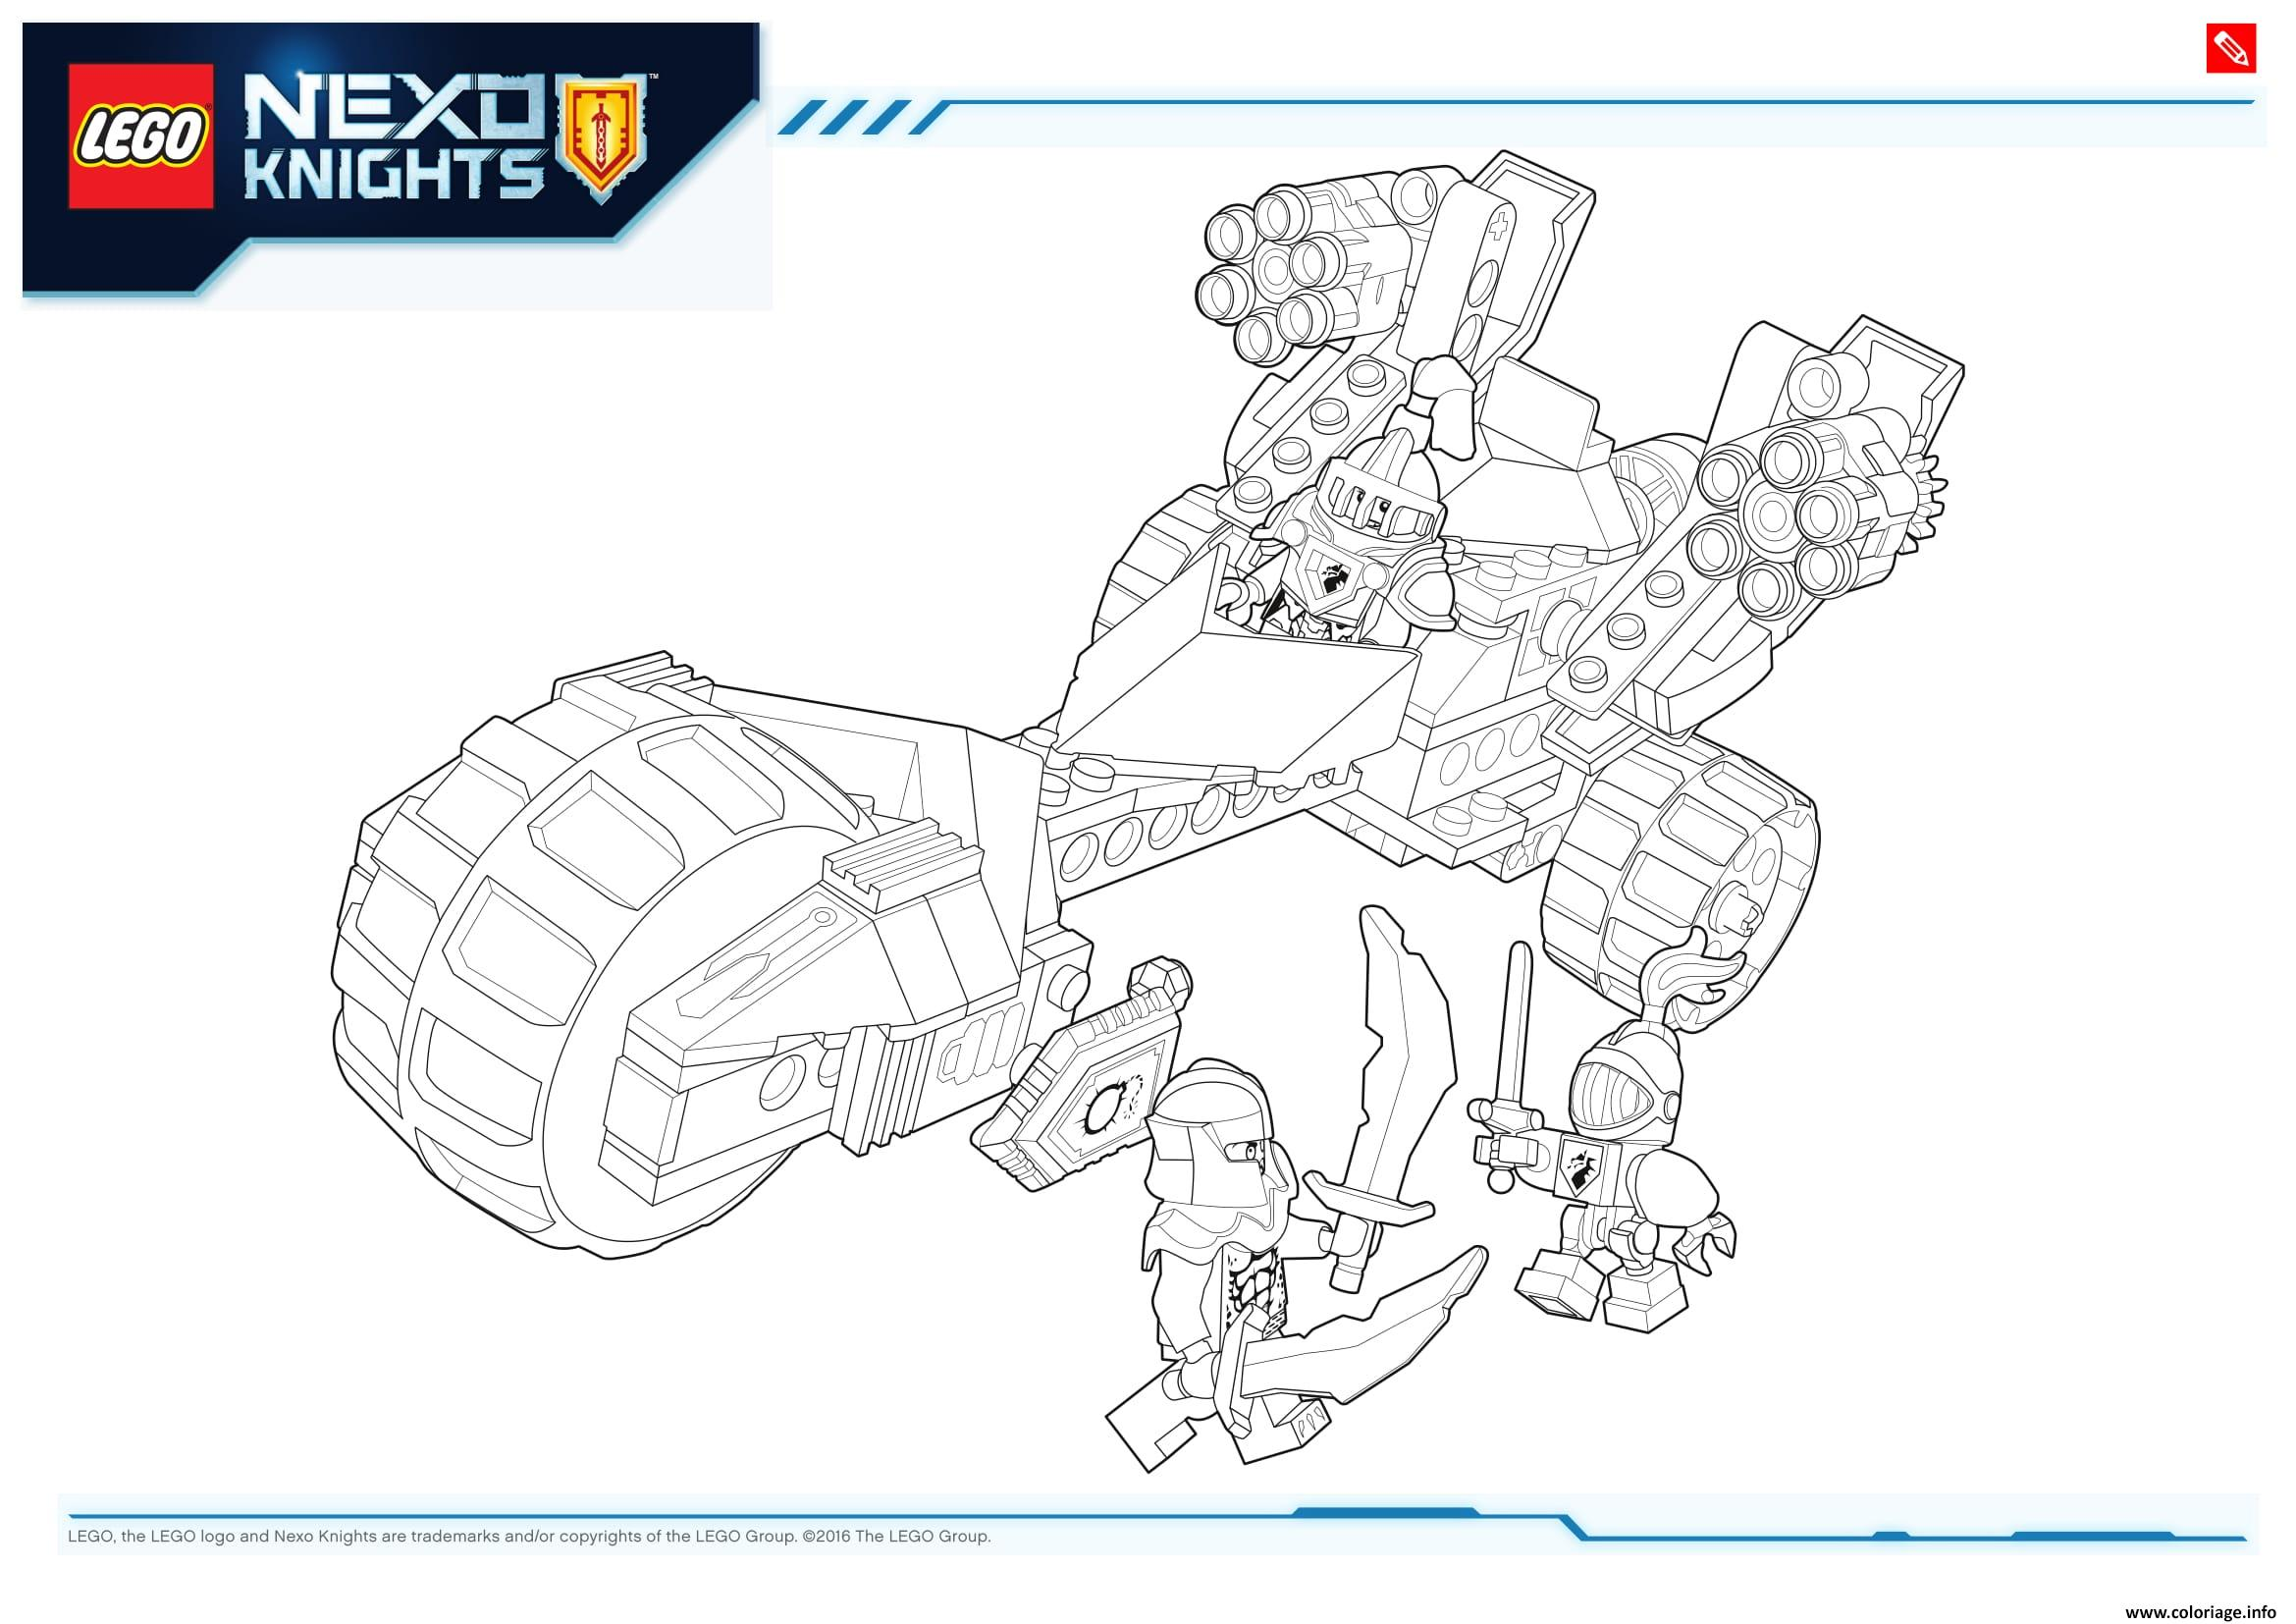 Coloriage Lego NEXO KNIGHTS Products 3 Dessin à Imprimer